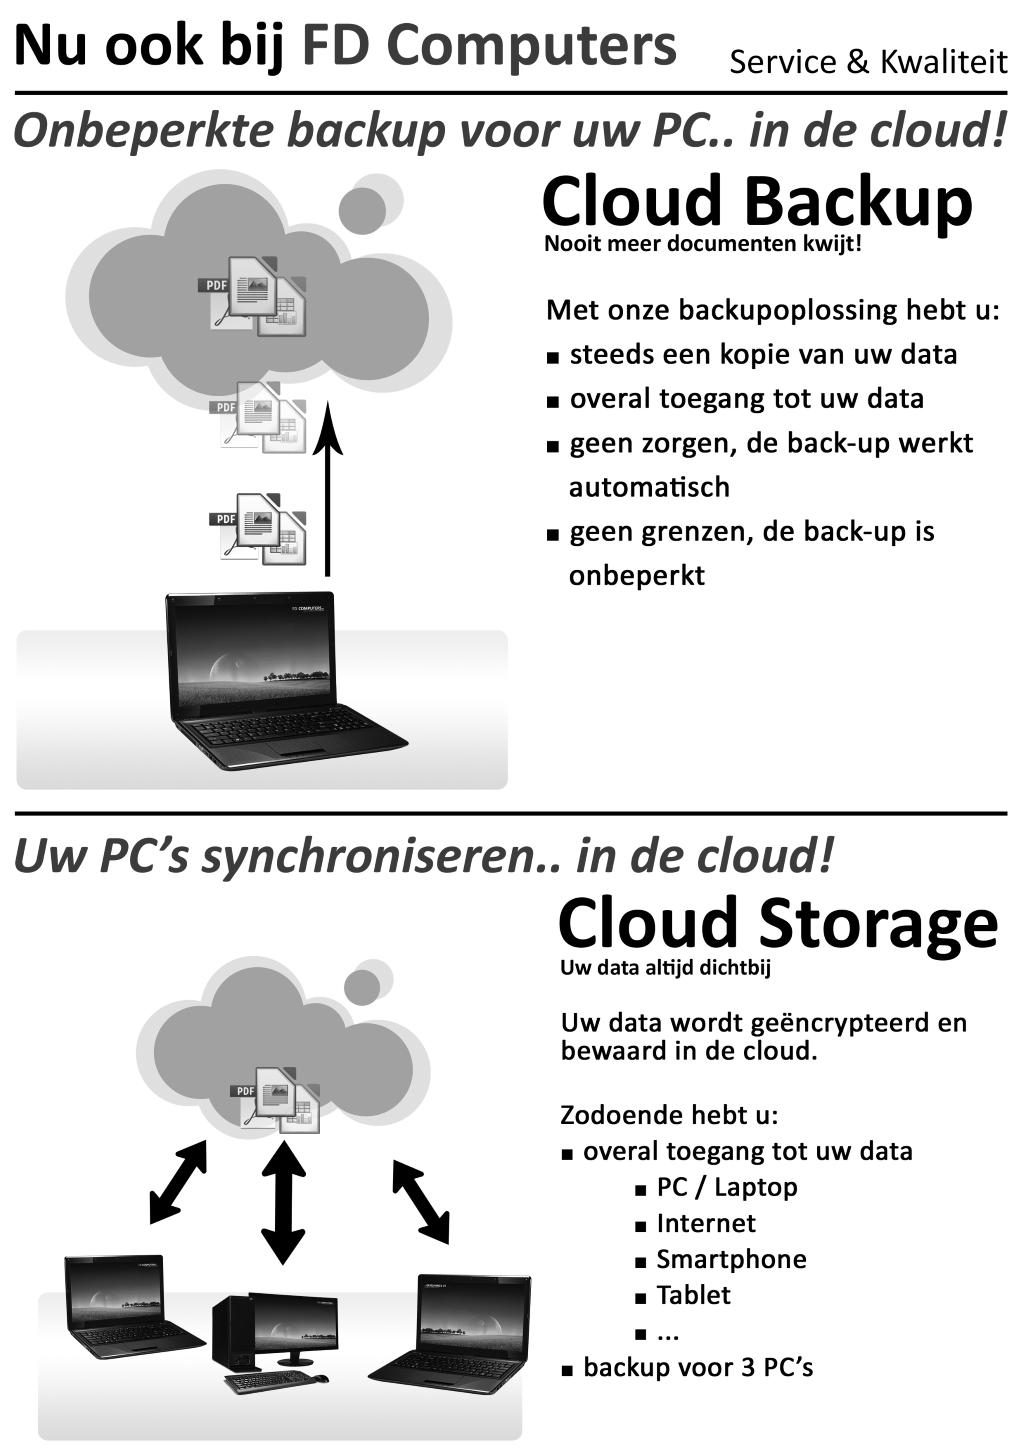 Cloudbackups bij FD-Computers